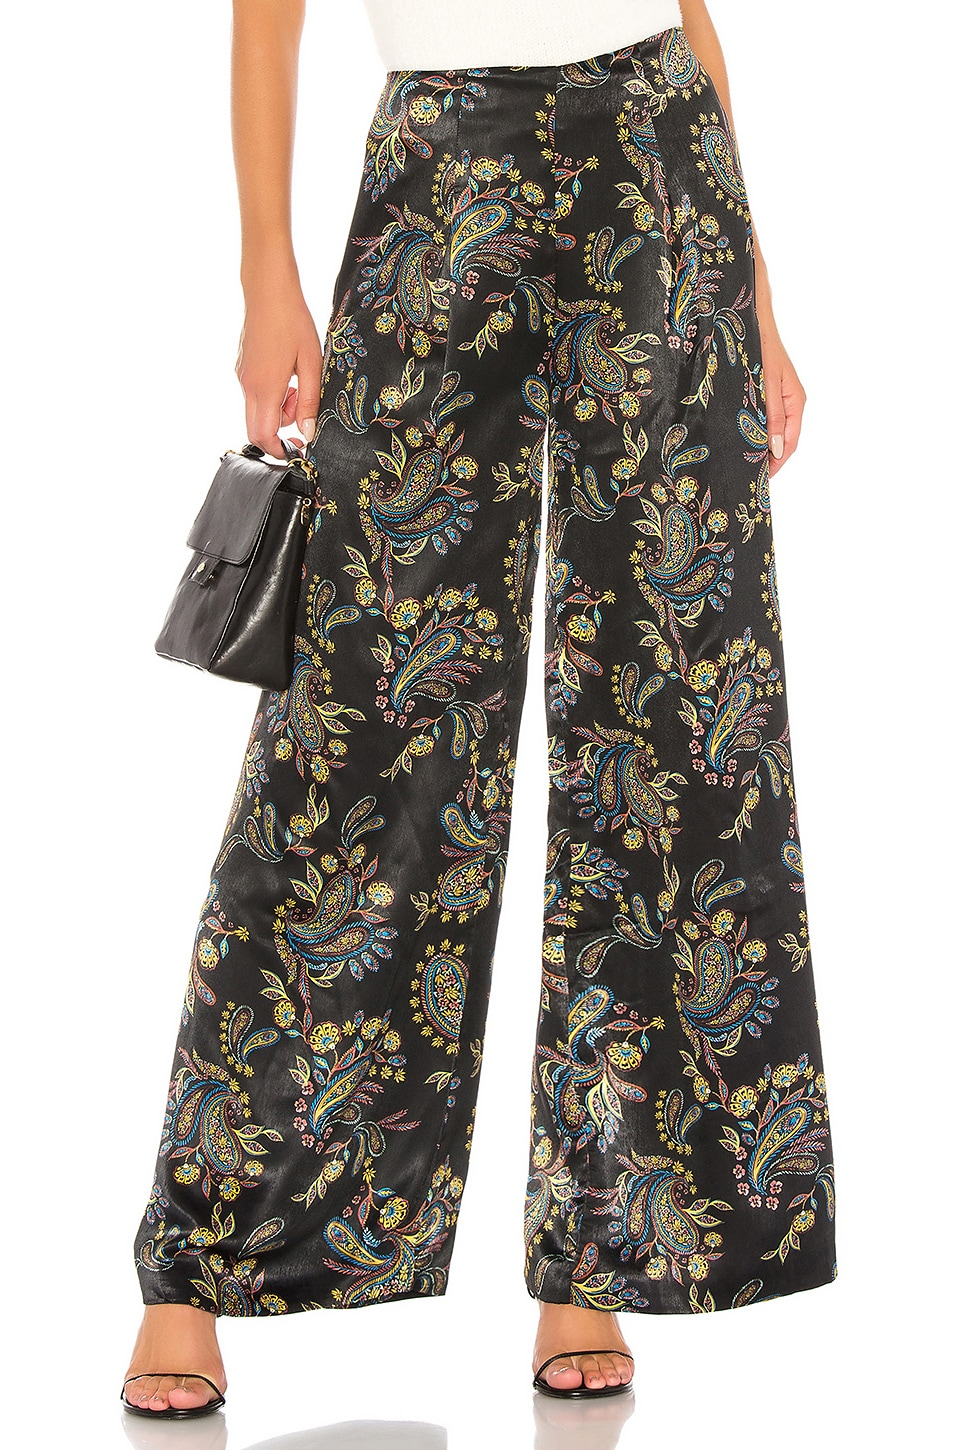 House of Harlow 1960 x REVOLVE Marko Pant in Noir Paisley Multi